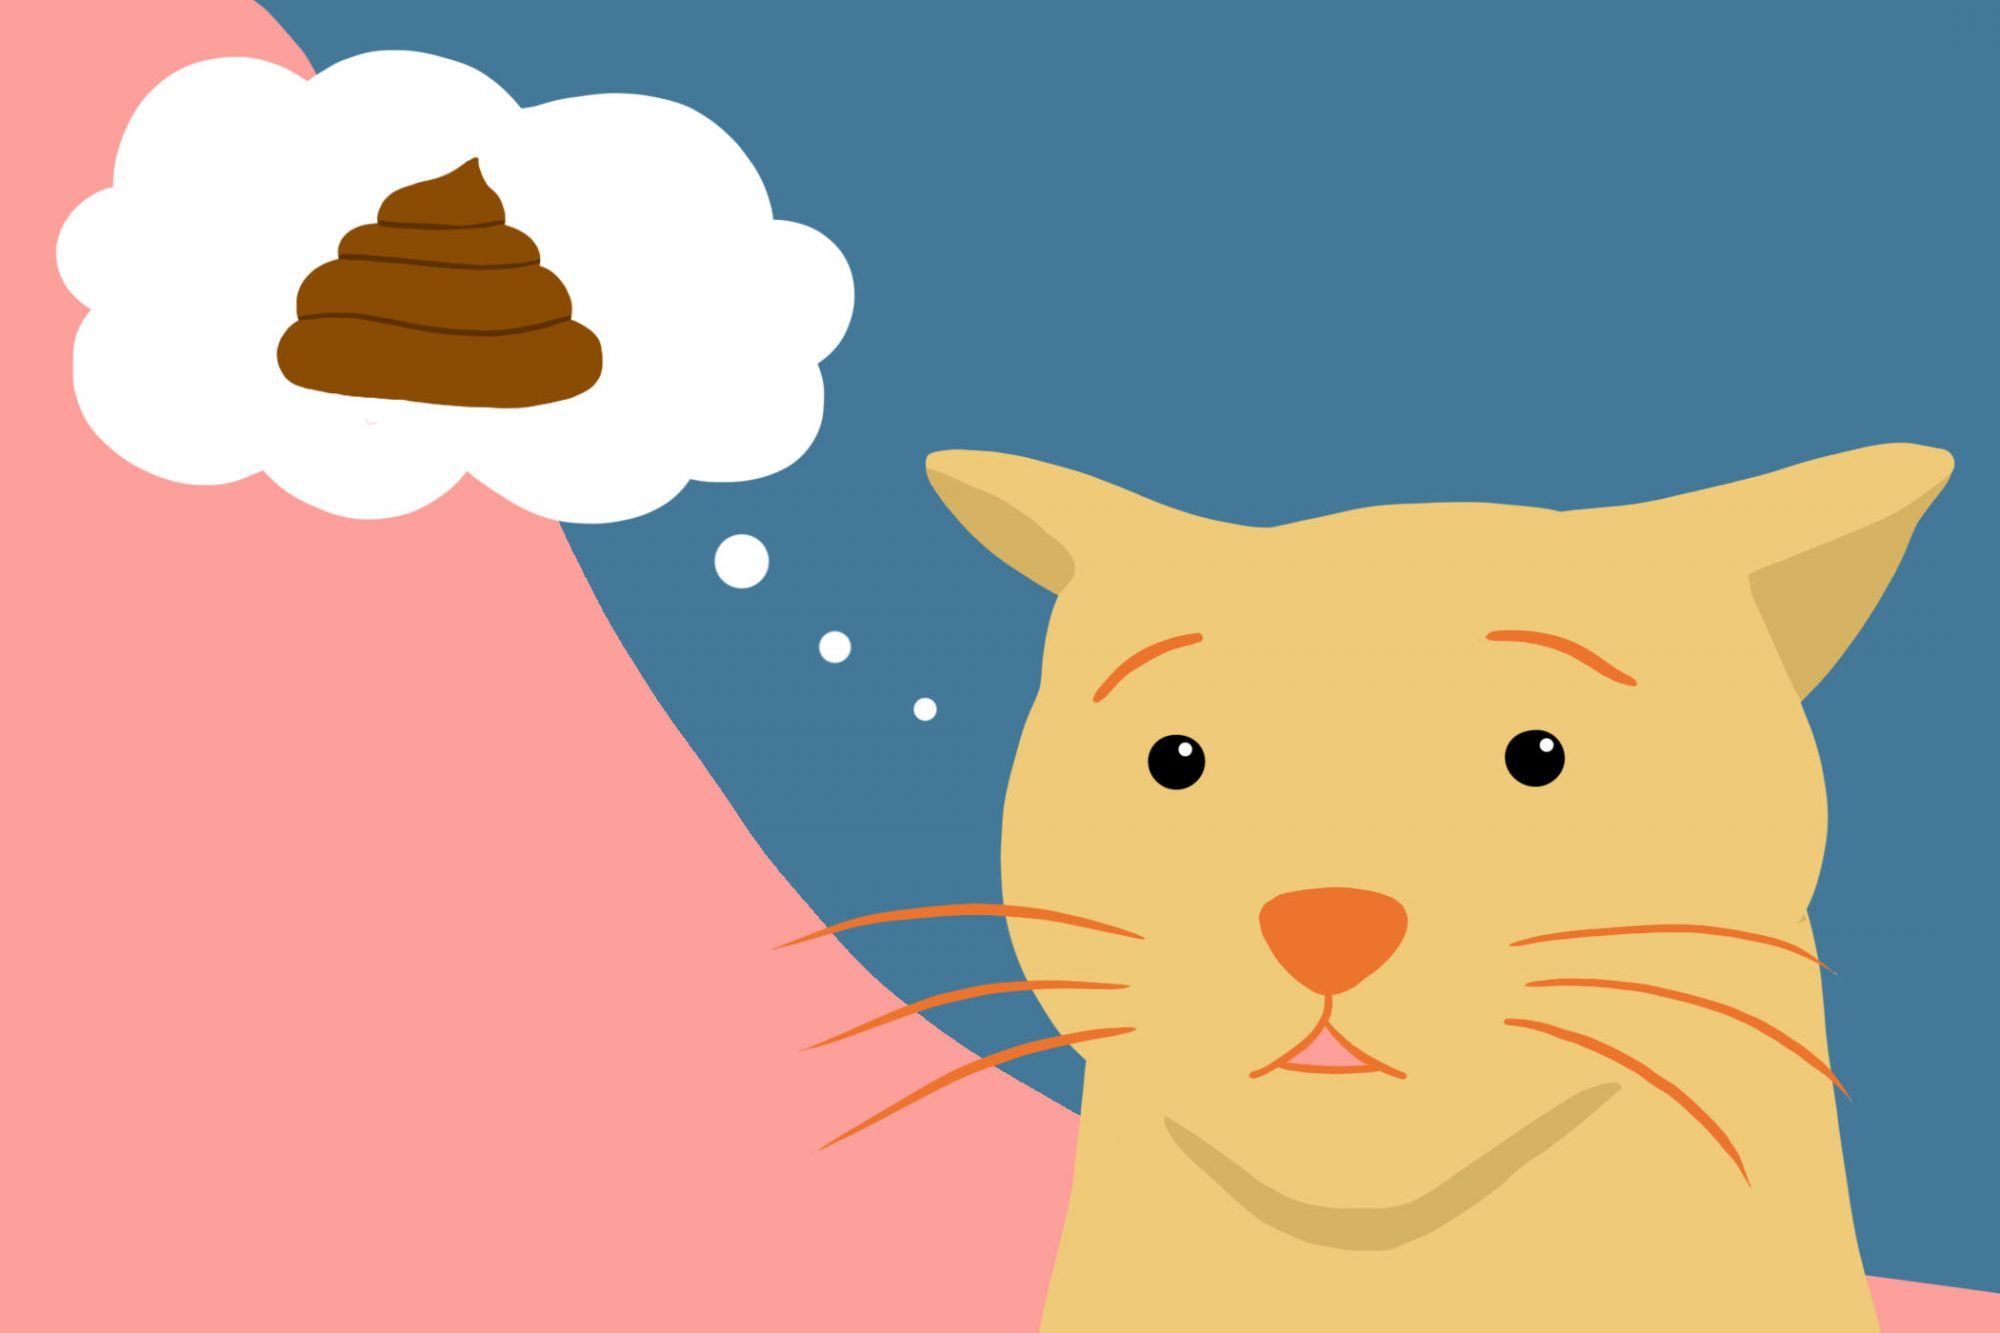 illustration of a cat thinking about a poo emoji